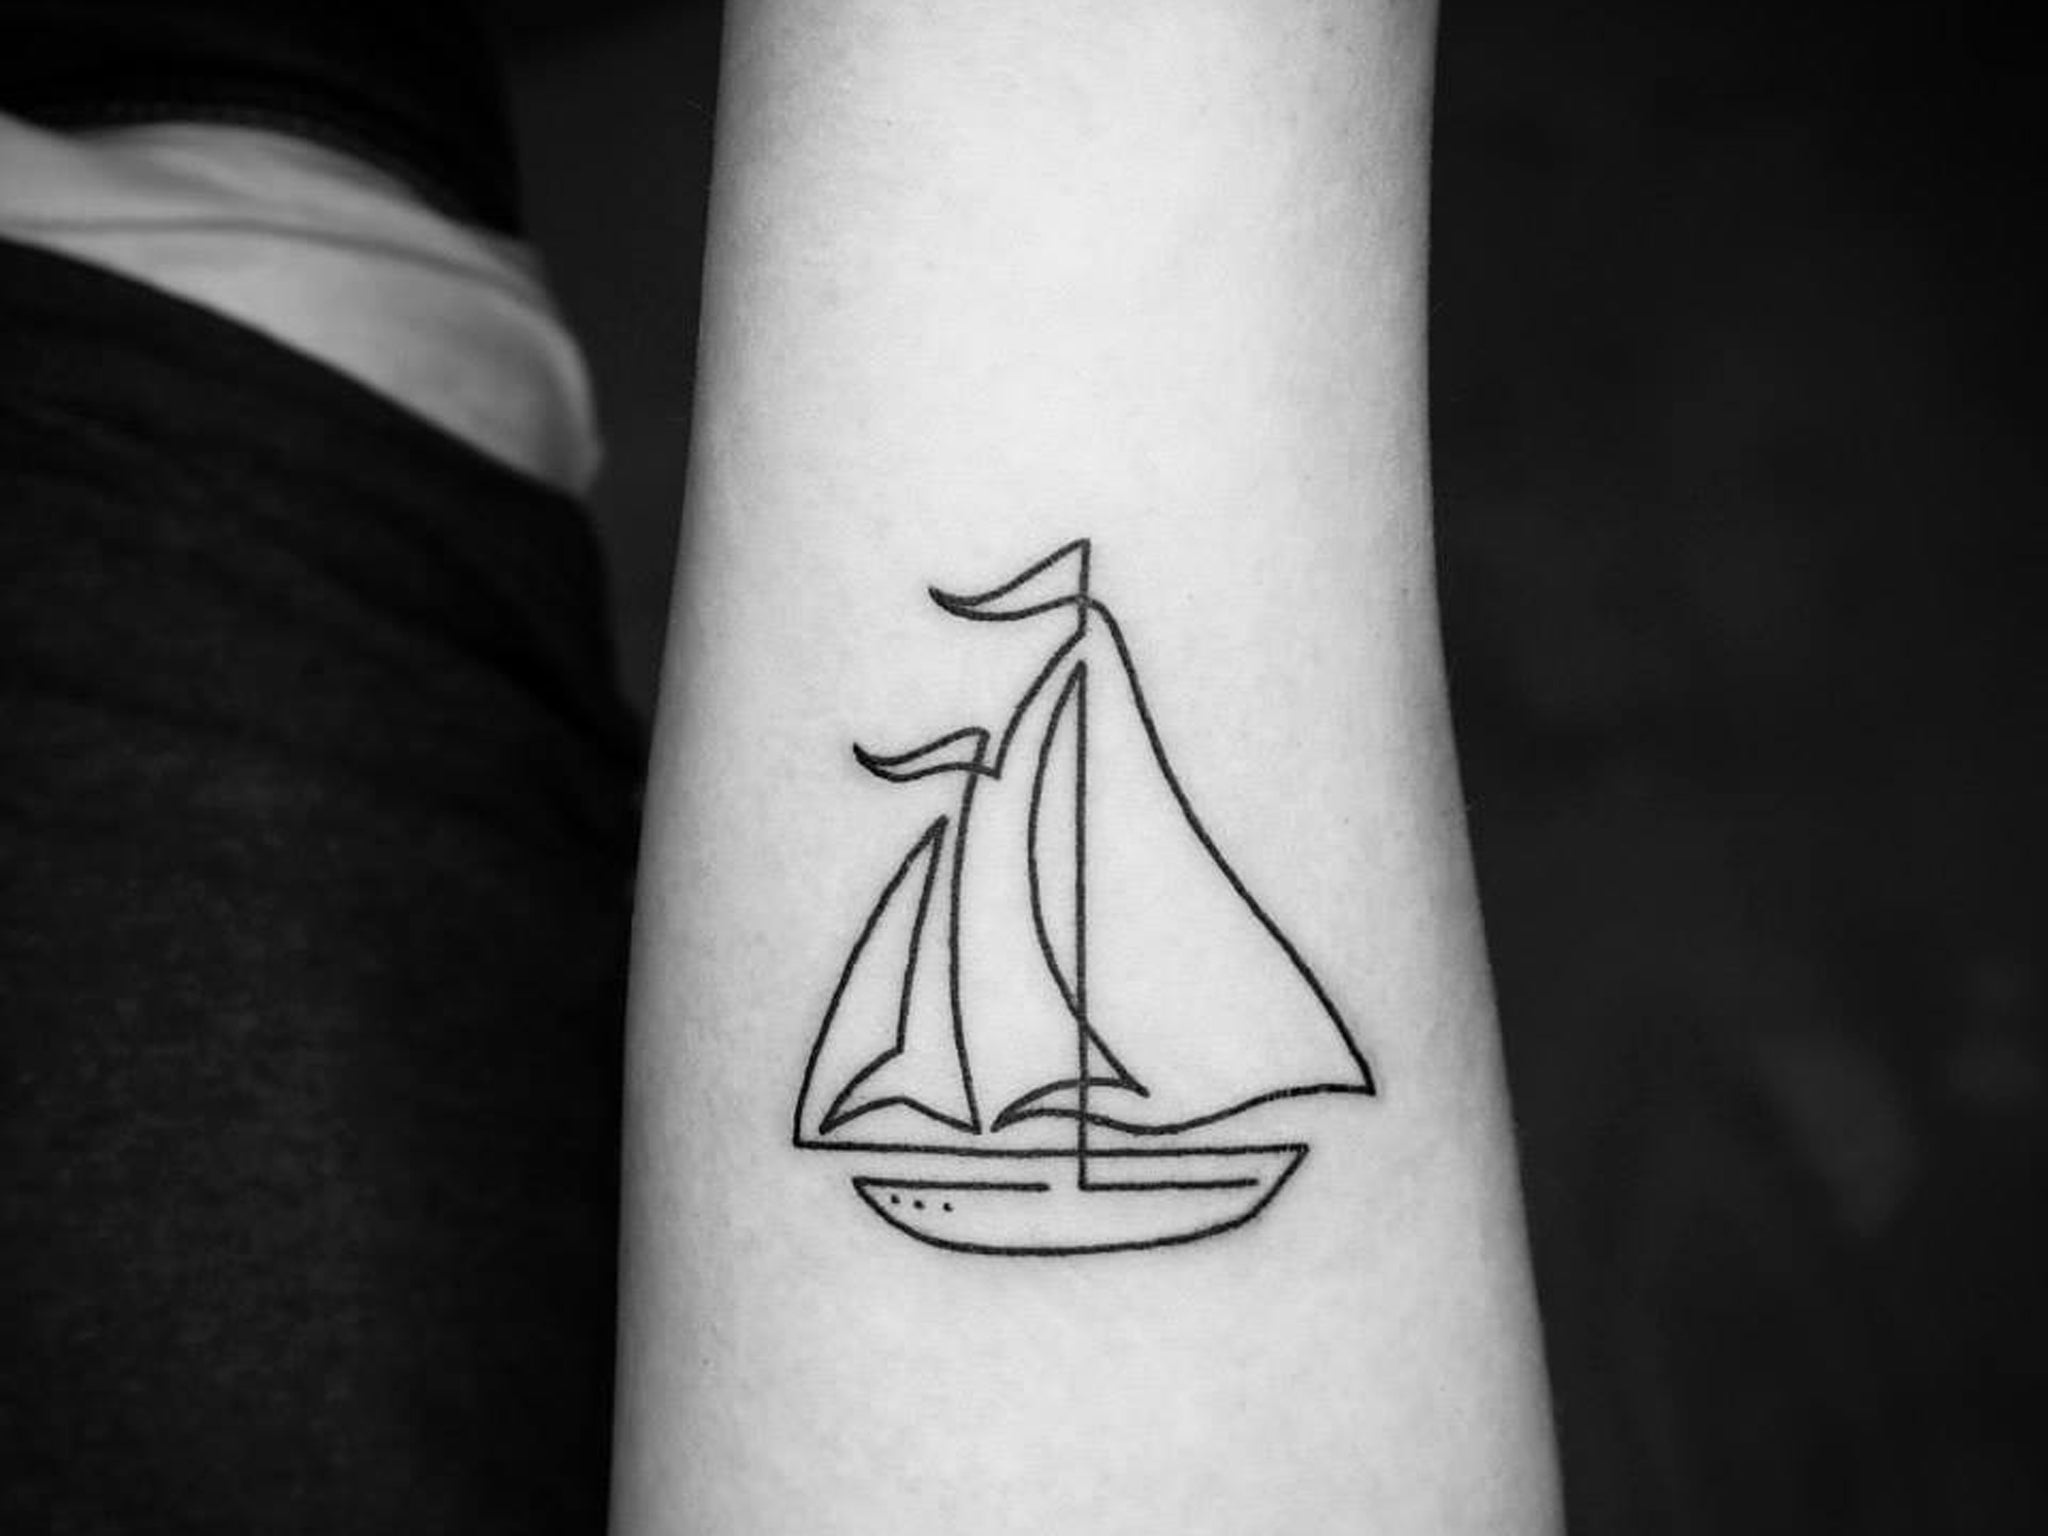 These Continuous Line Tattoos Are Beautiful In Their